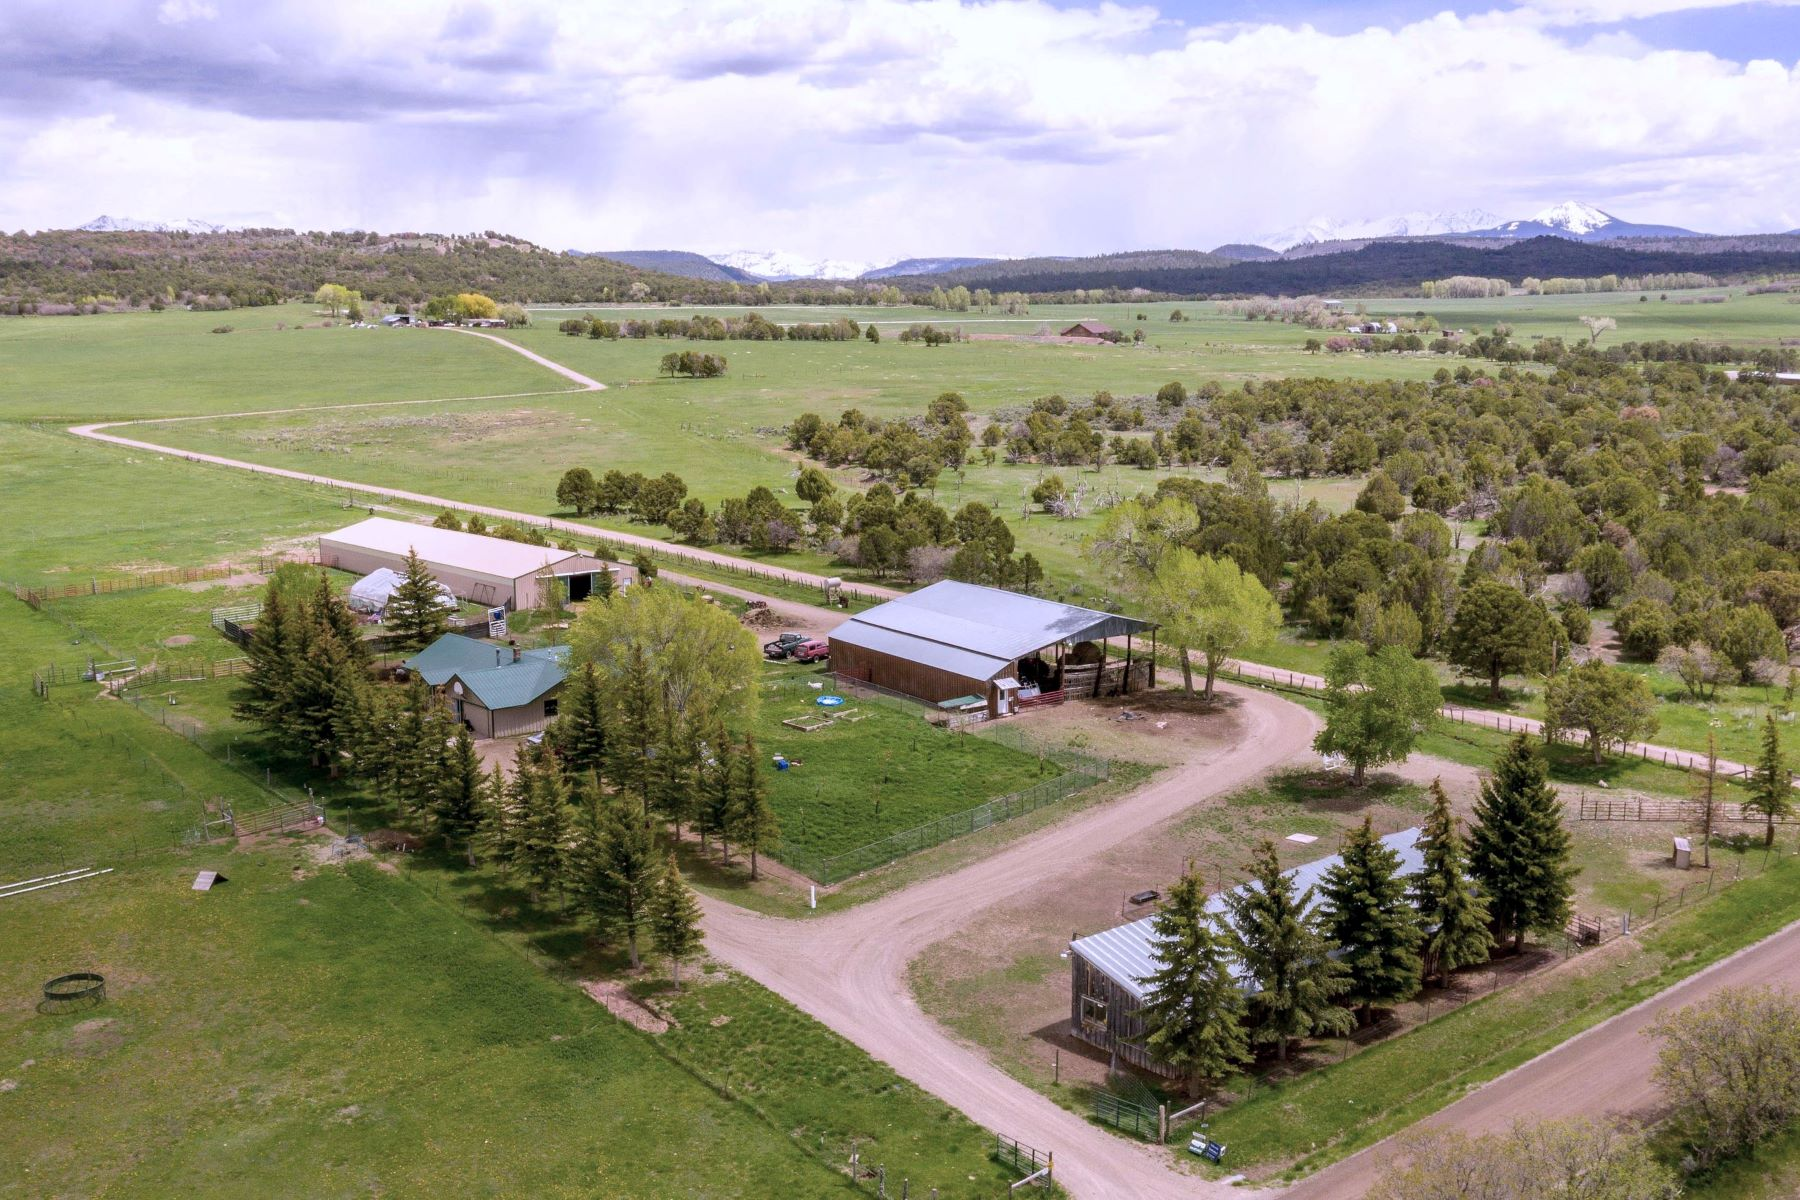 Single Family Homes for Sale at 1448 County Road 46X Norwood, Colorado 81435 United States